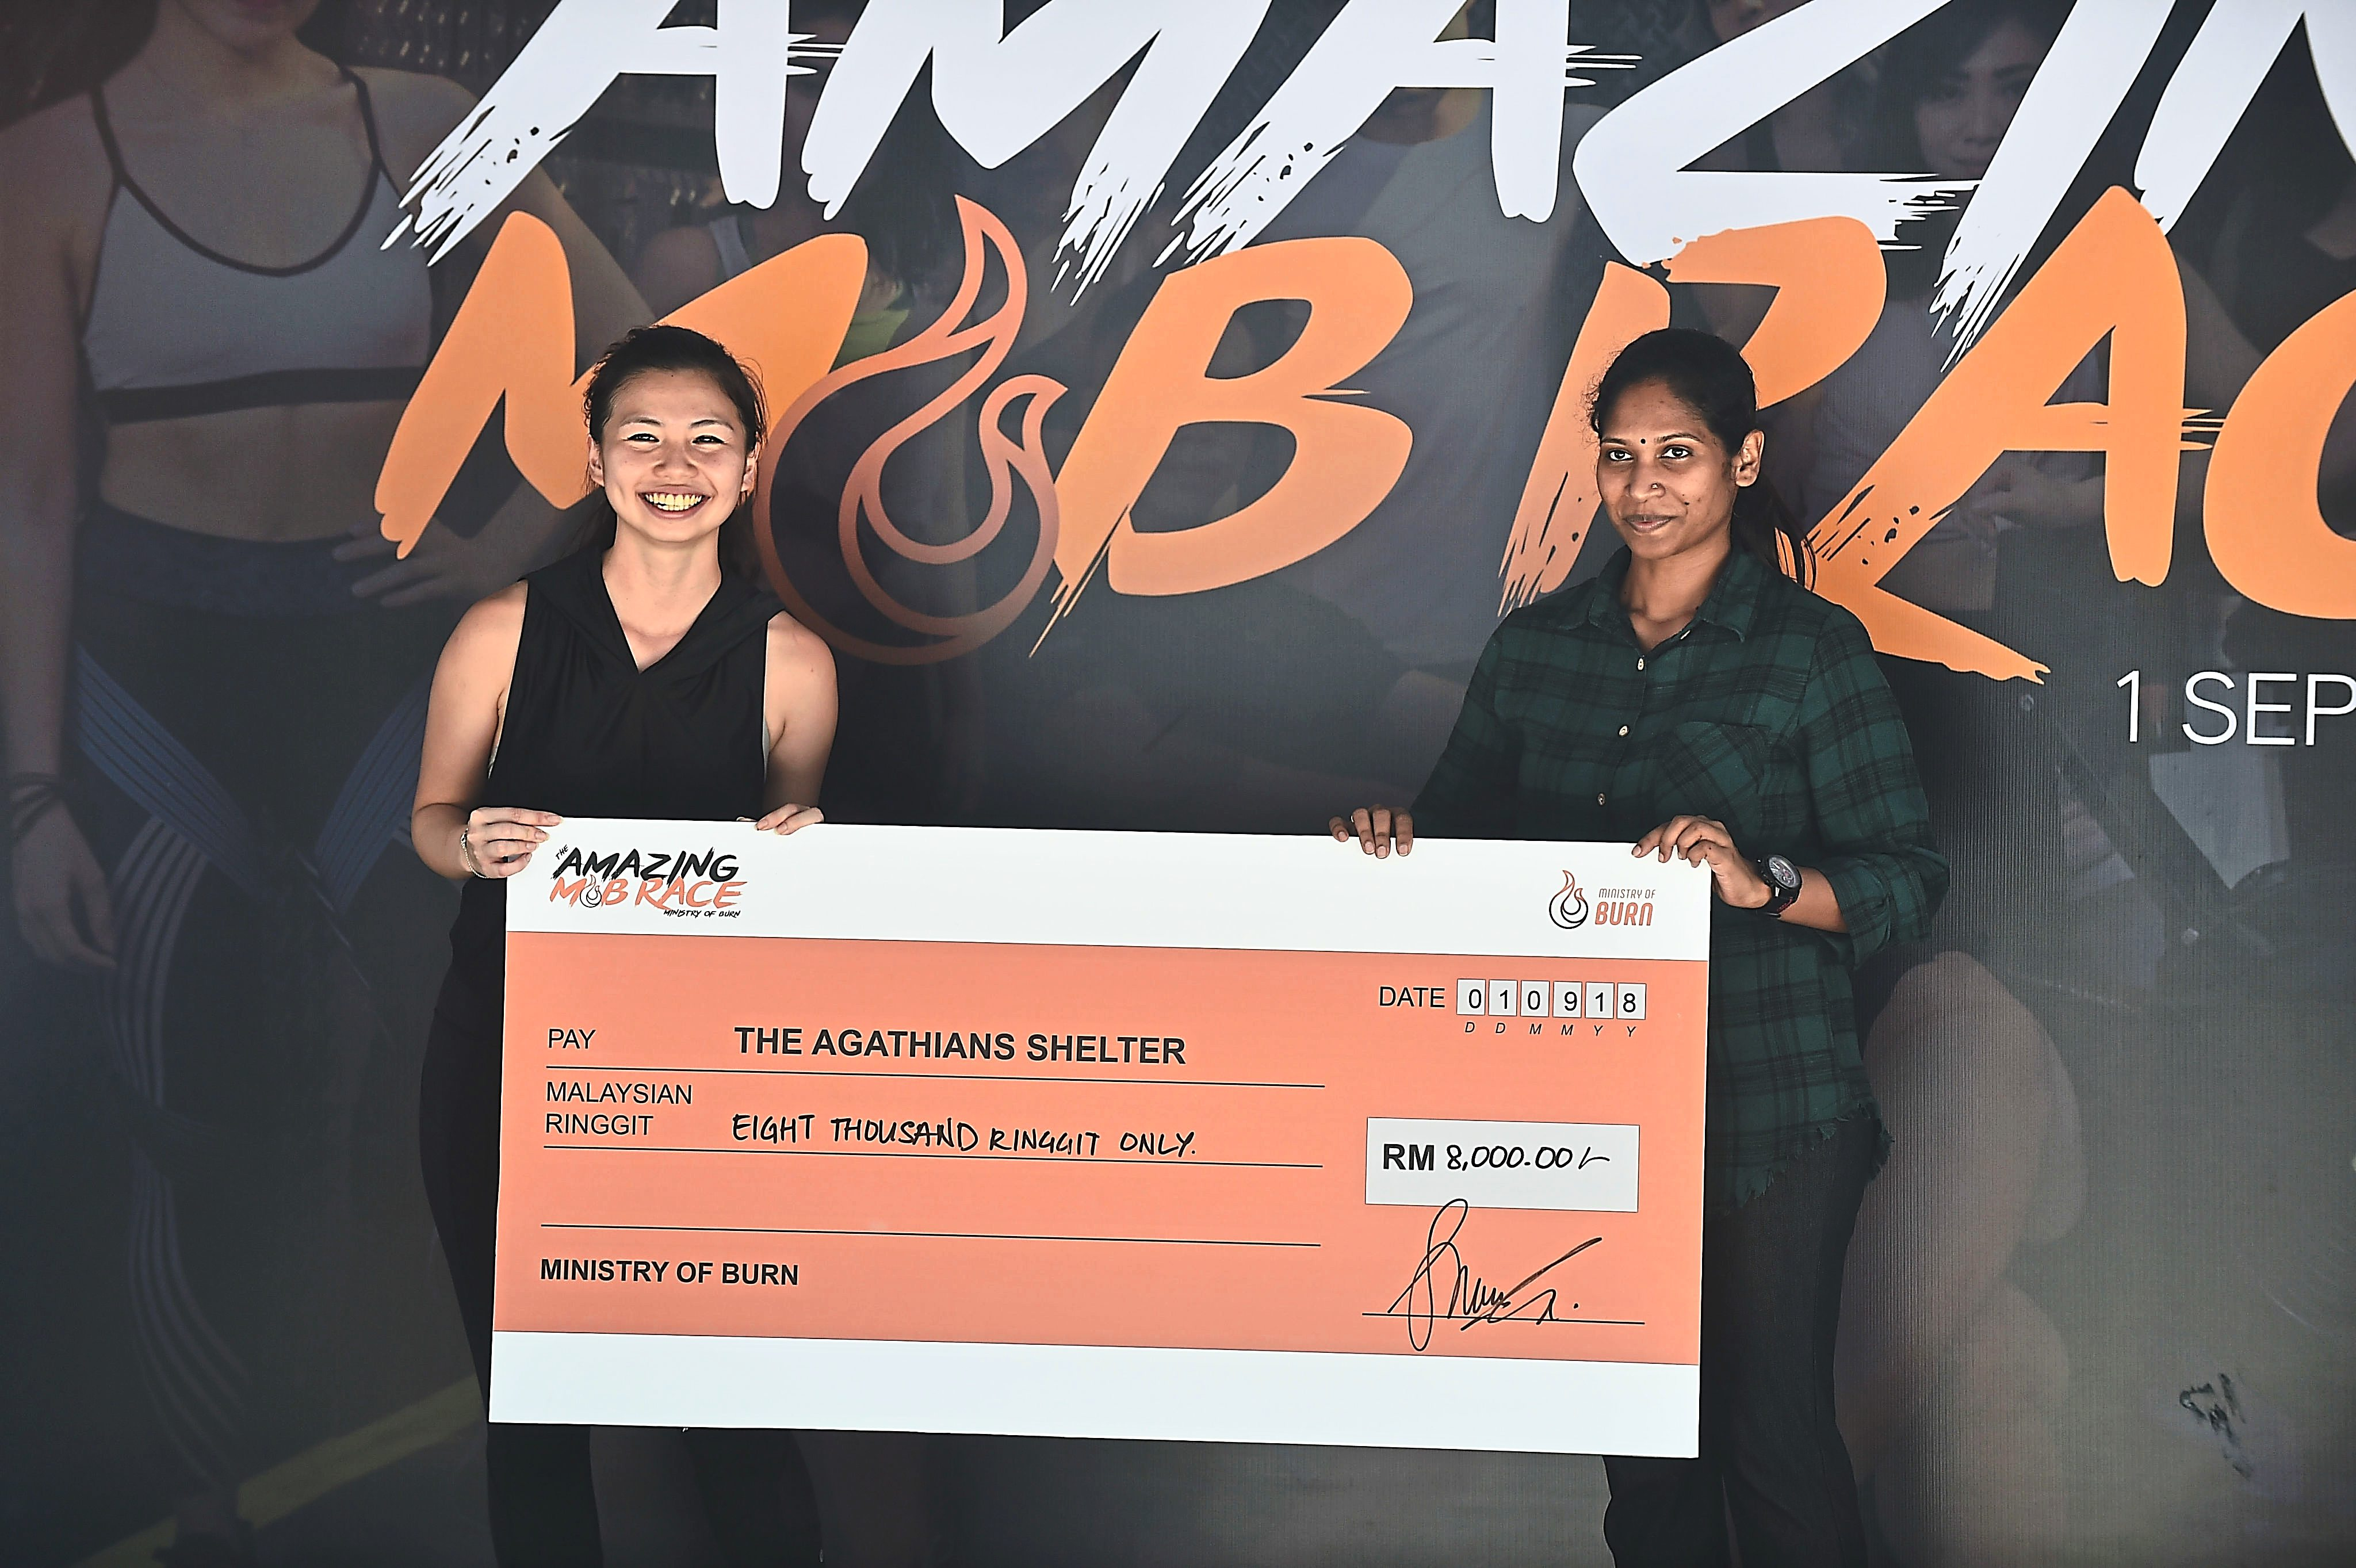 Ng (left) handing over a mock cheque to Agathians Shelter executive council member M. Inthira.